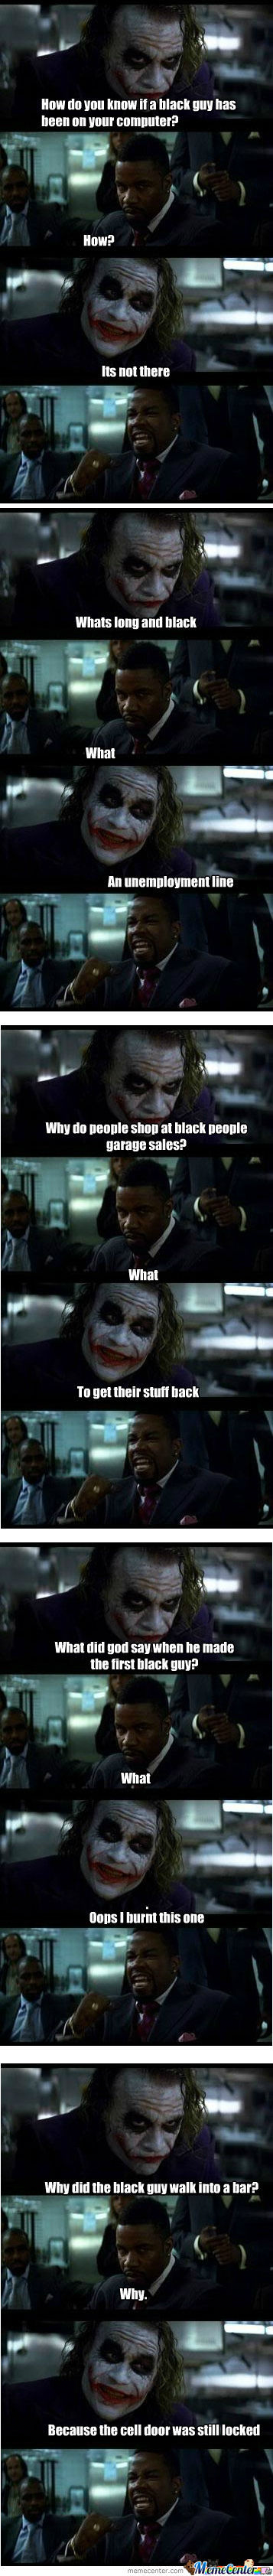 Joker & Black Guy Compilation: Apologize To The Black Guys Out There